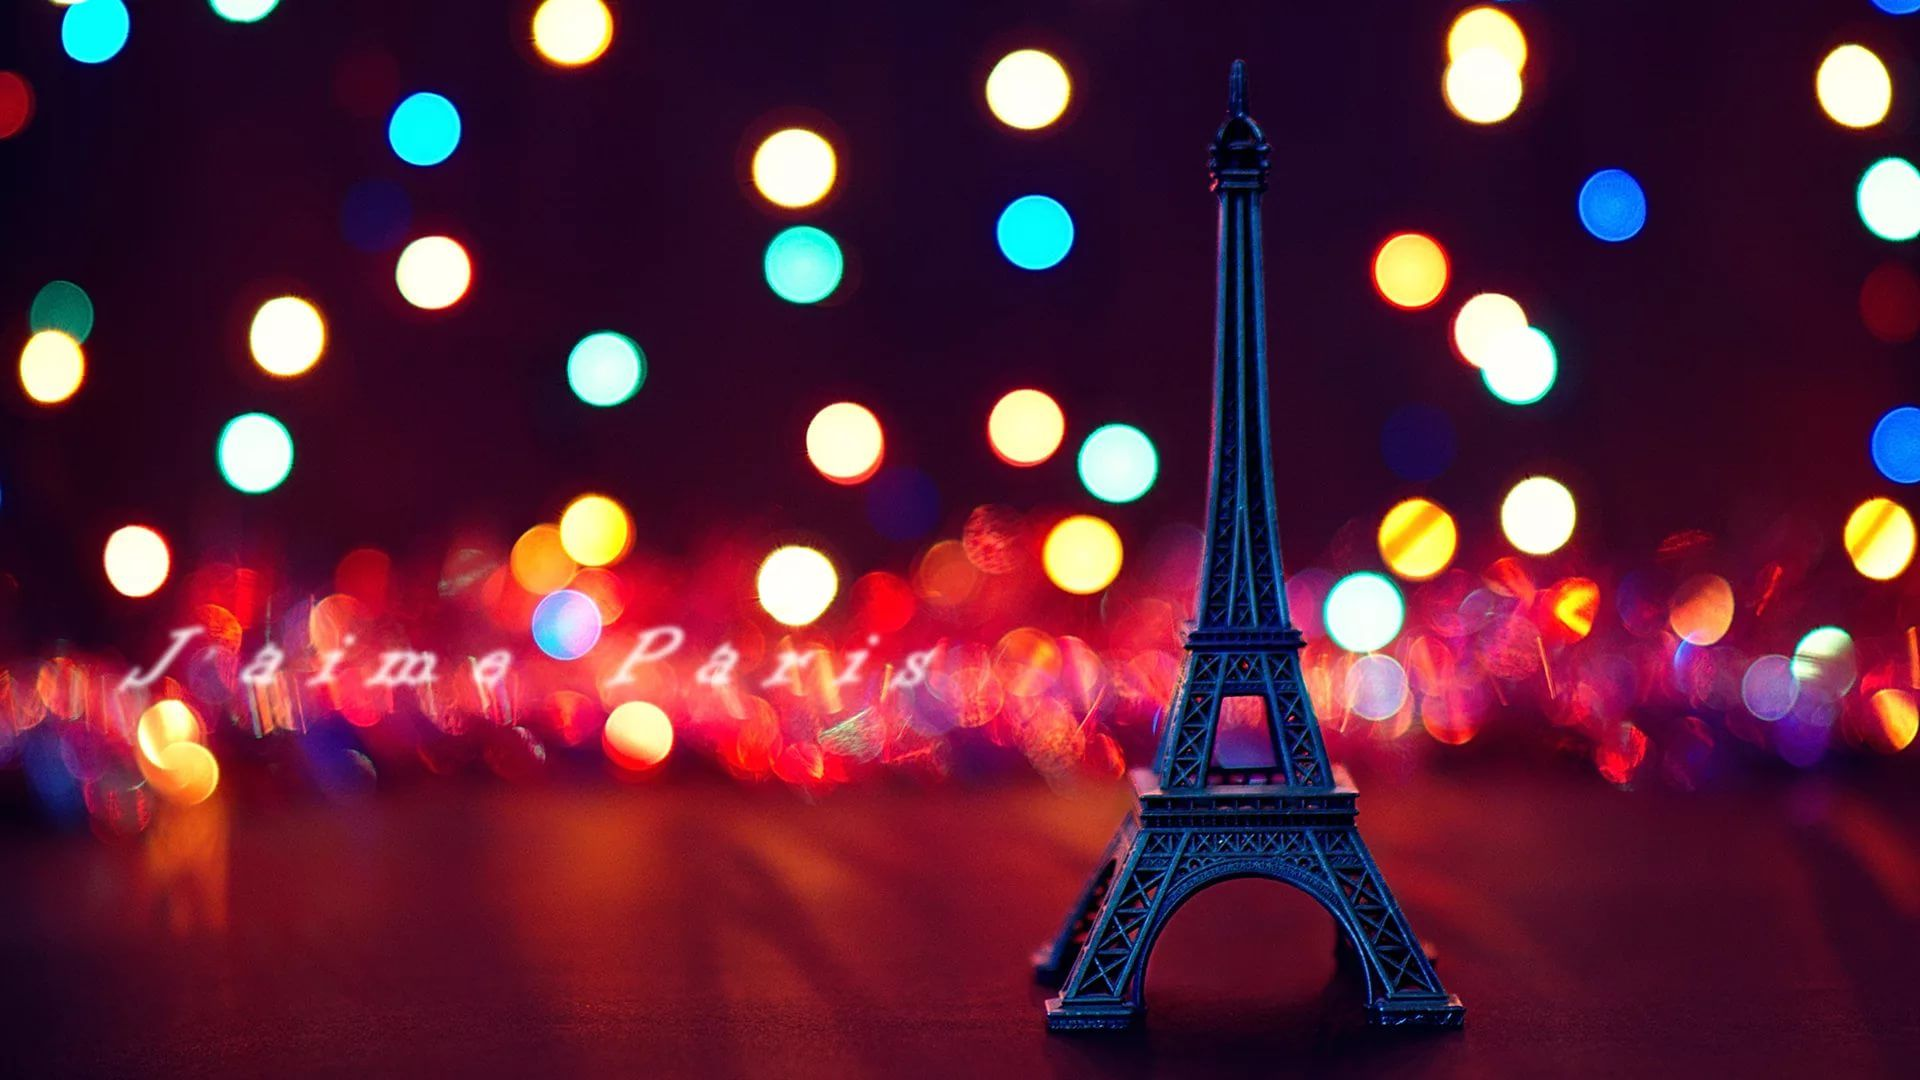 Cute Paris hd wallpaper 1080